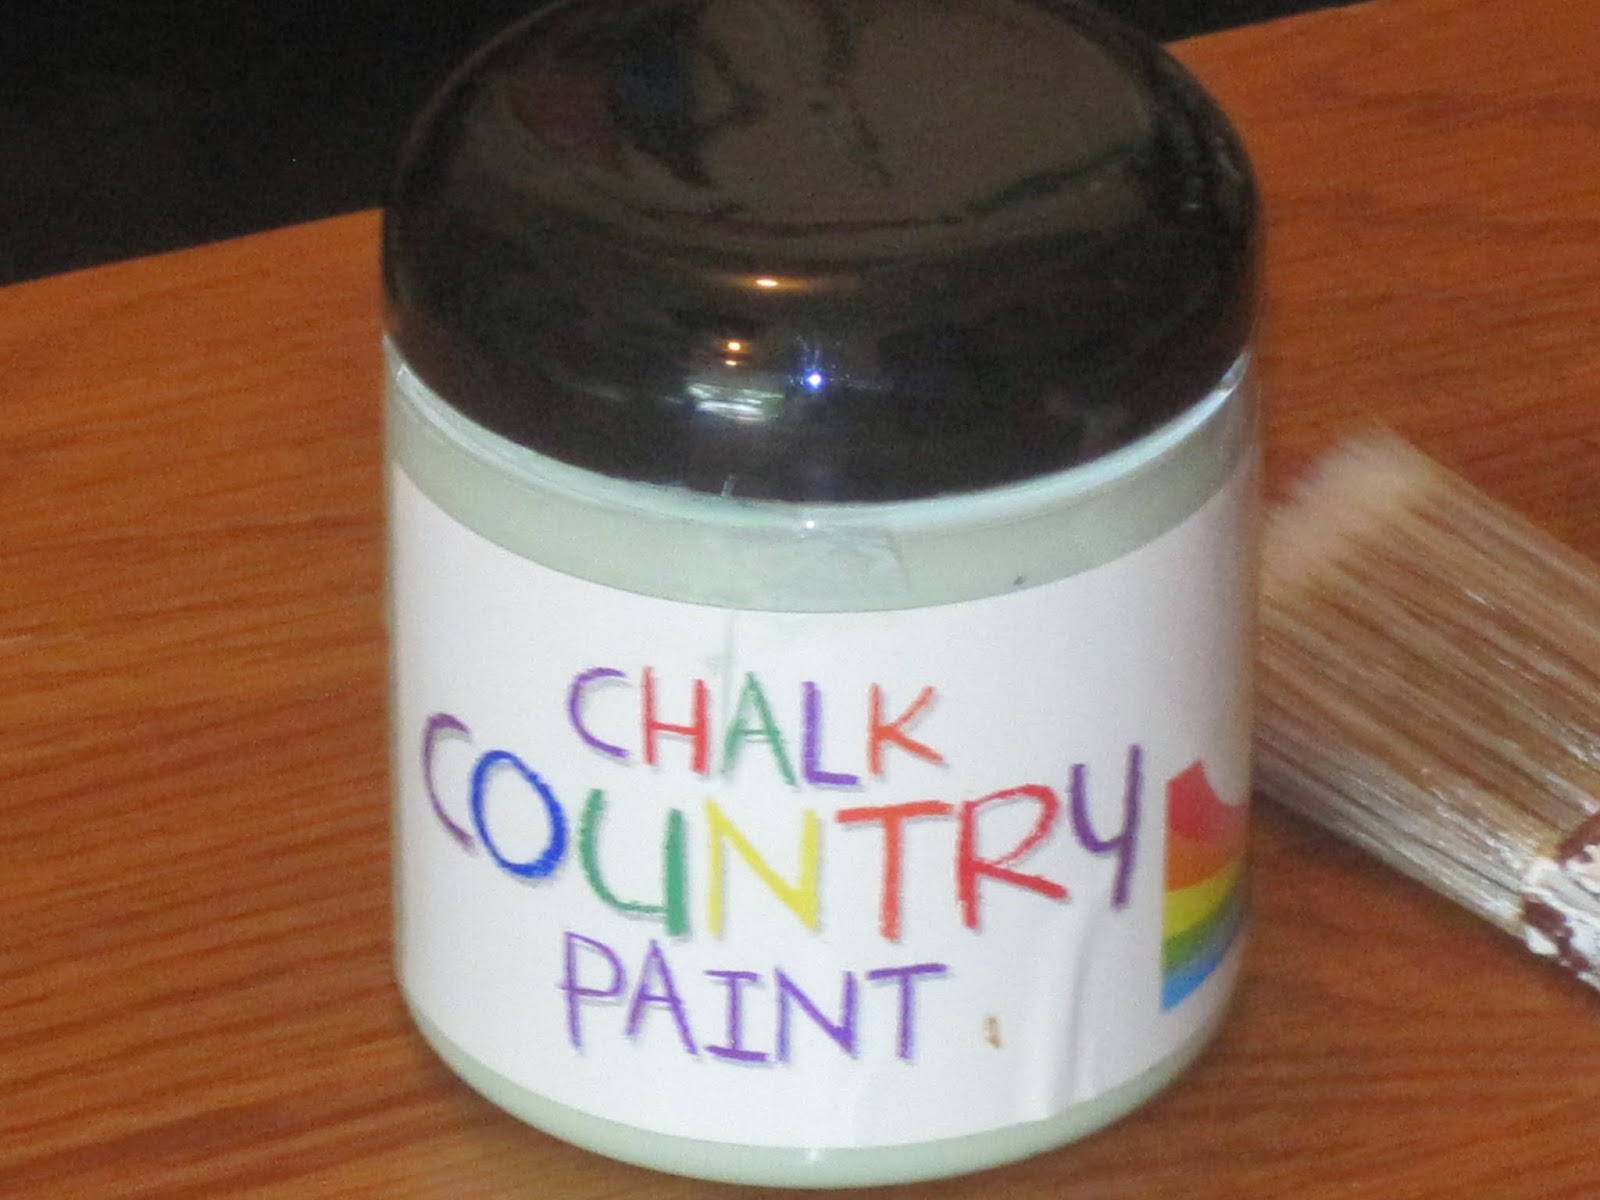 http://www.chalkcountry.com/#!about/c1ger